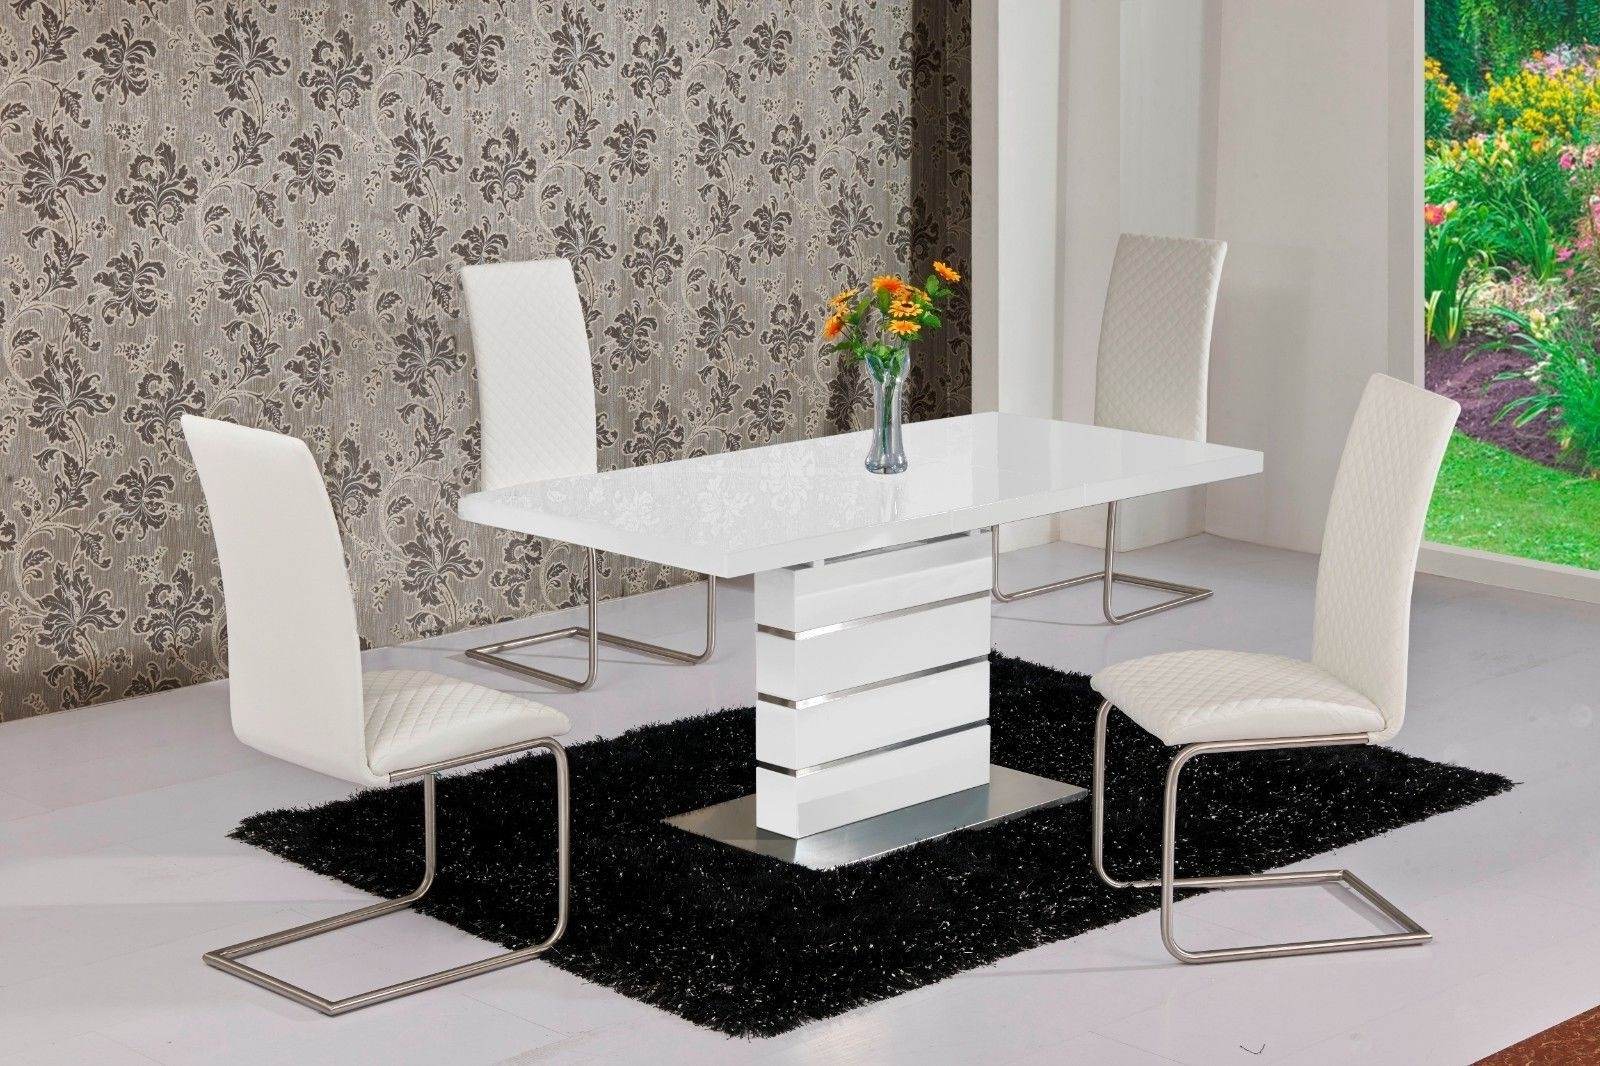 Mace High Gloss Extending 120 160 Dining Table & Chair Set – White Regarding 2018 Extending Dining Tables Sets (View 4 of 25)